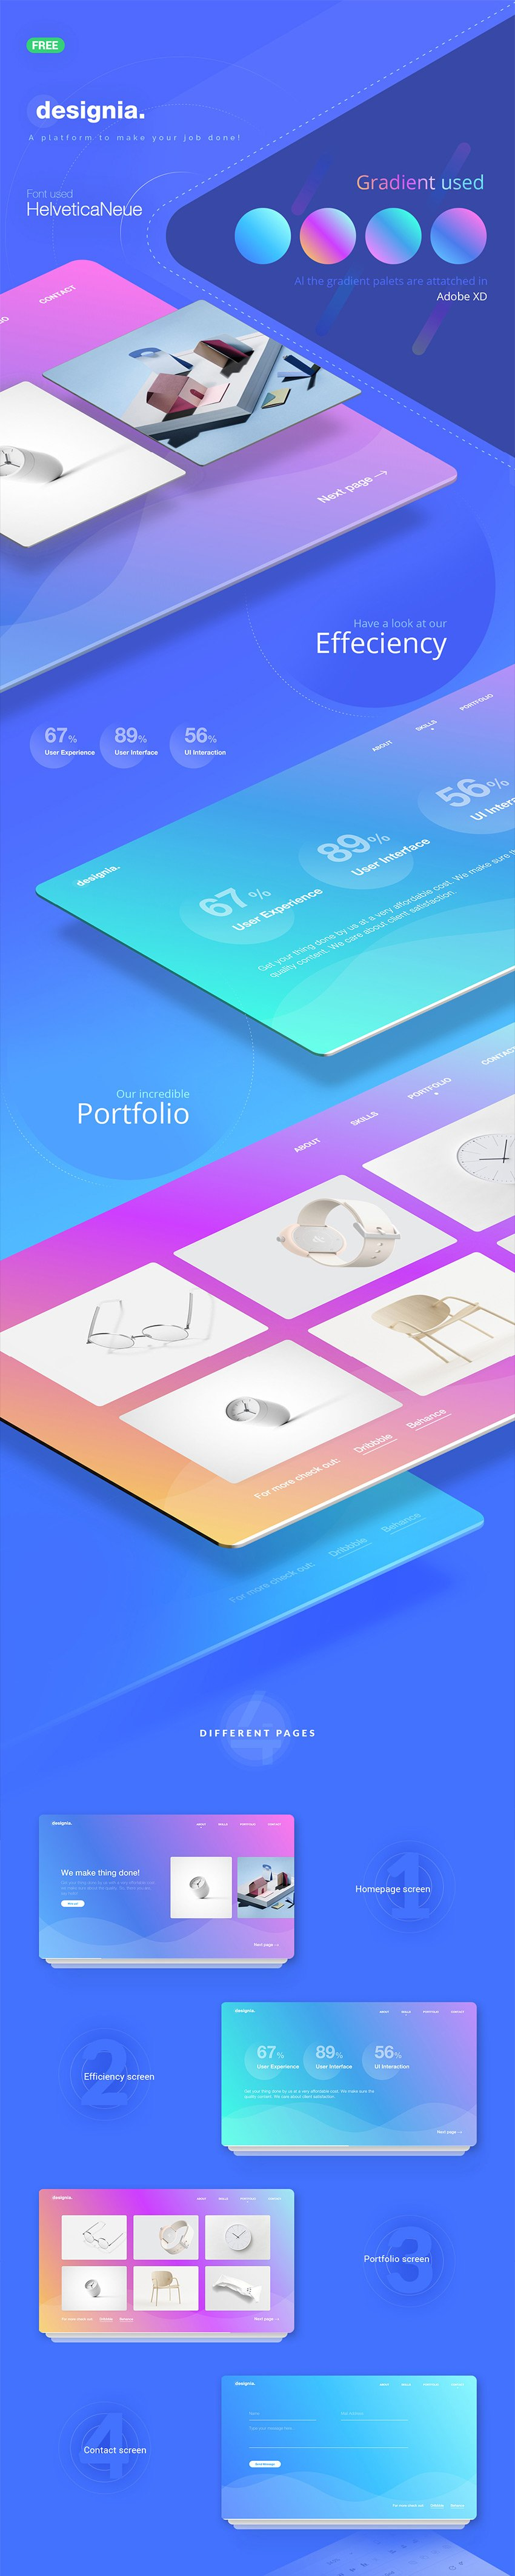 Designia Landing Page - Web Template for Adobe Xd